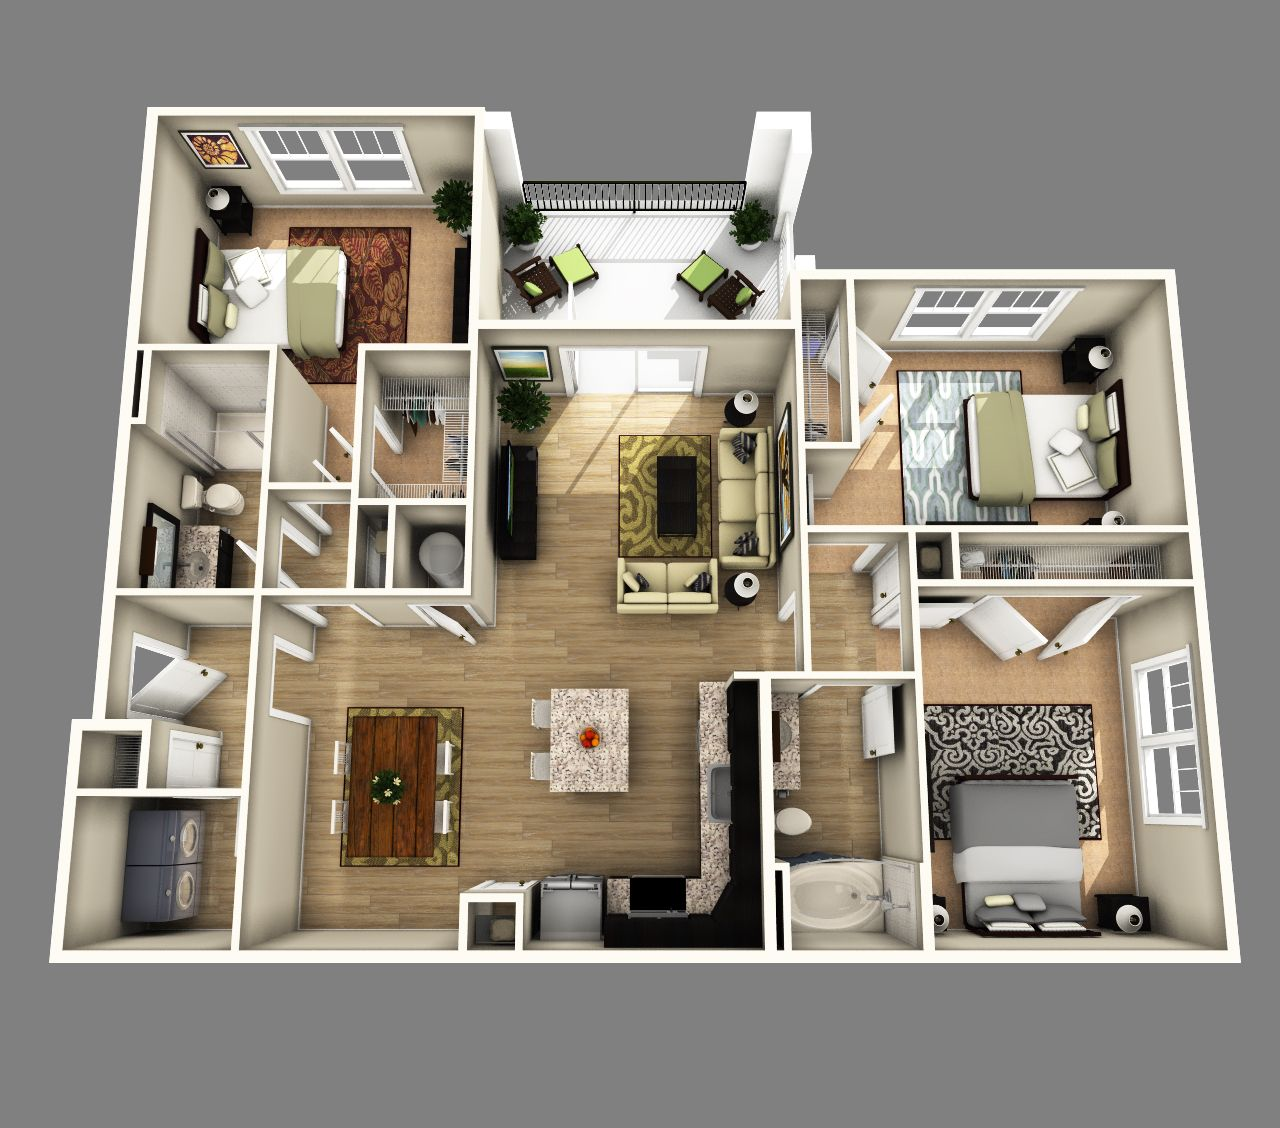 Image result for 3d floor plan apartment mis gustos en for Planner casa 3d